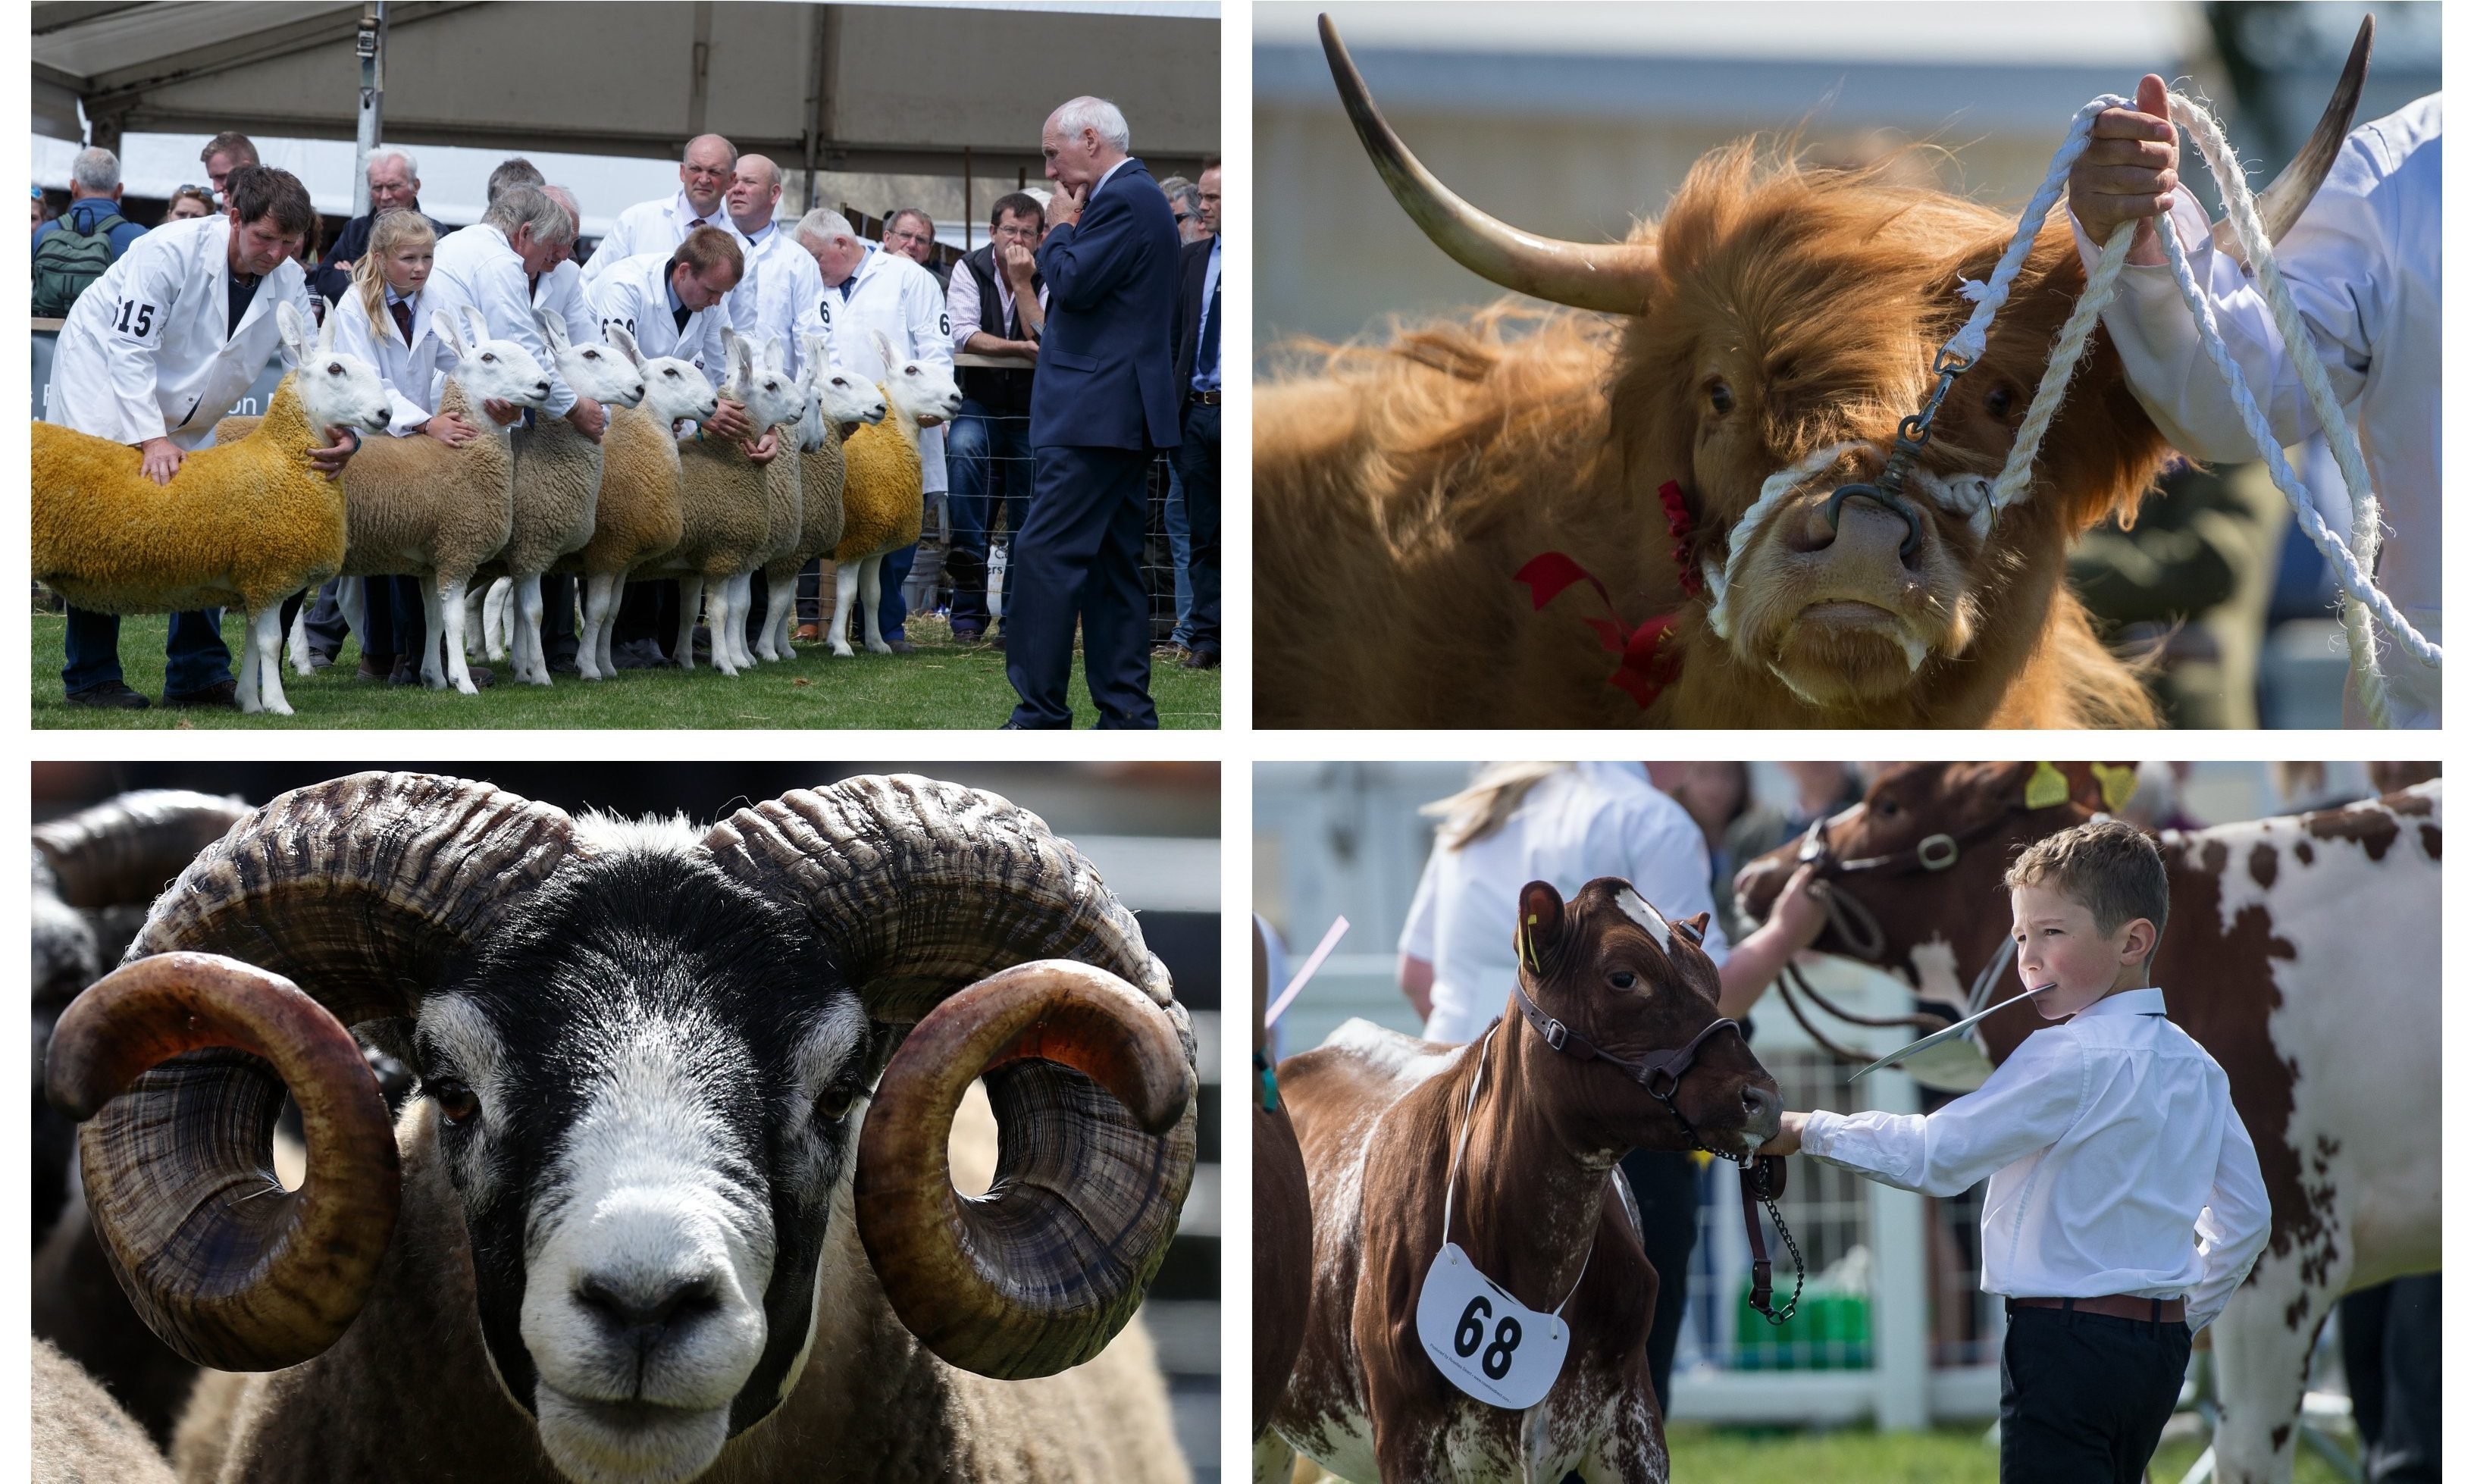 Photos from the 2018 Royal Highland Show.